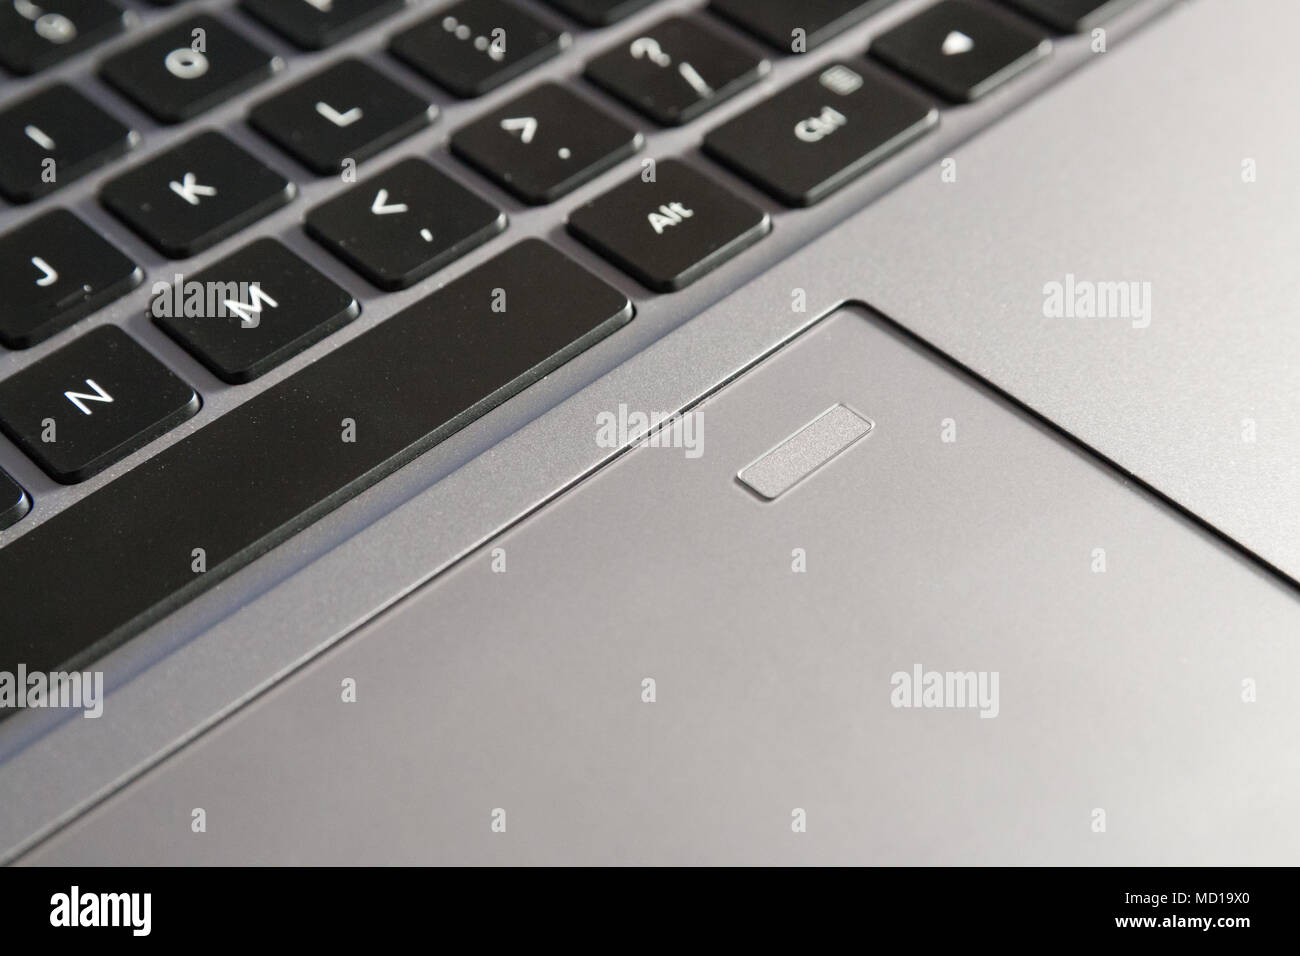 Fingerprint scanner on notebook touchpad, partial keybord view - Stock Image